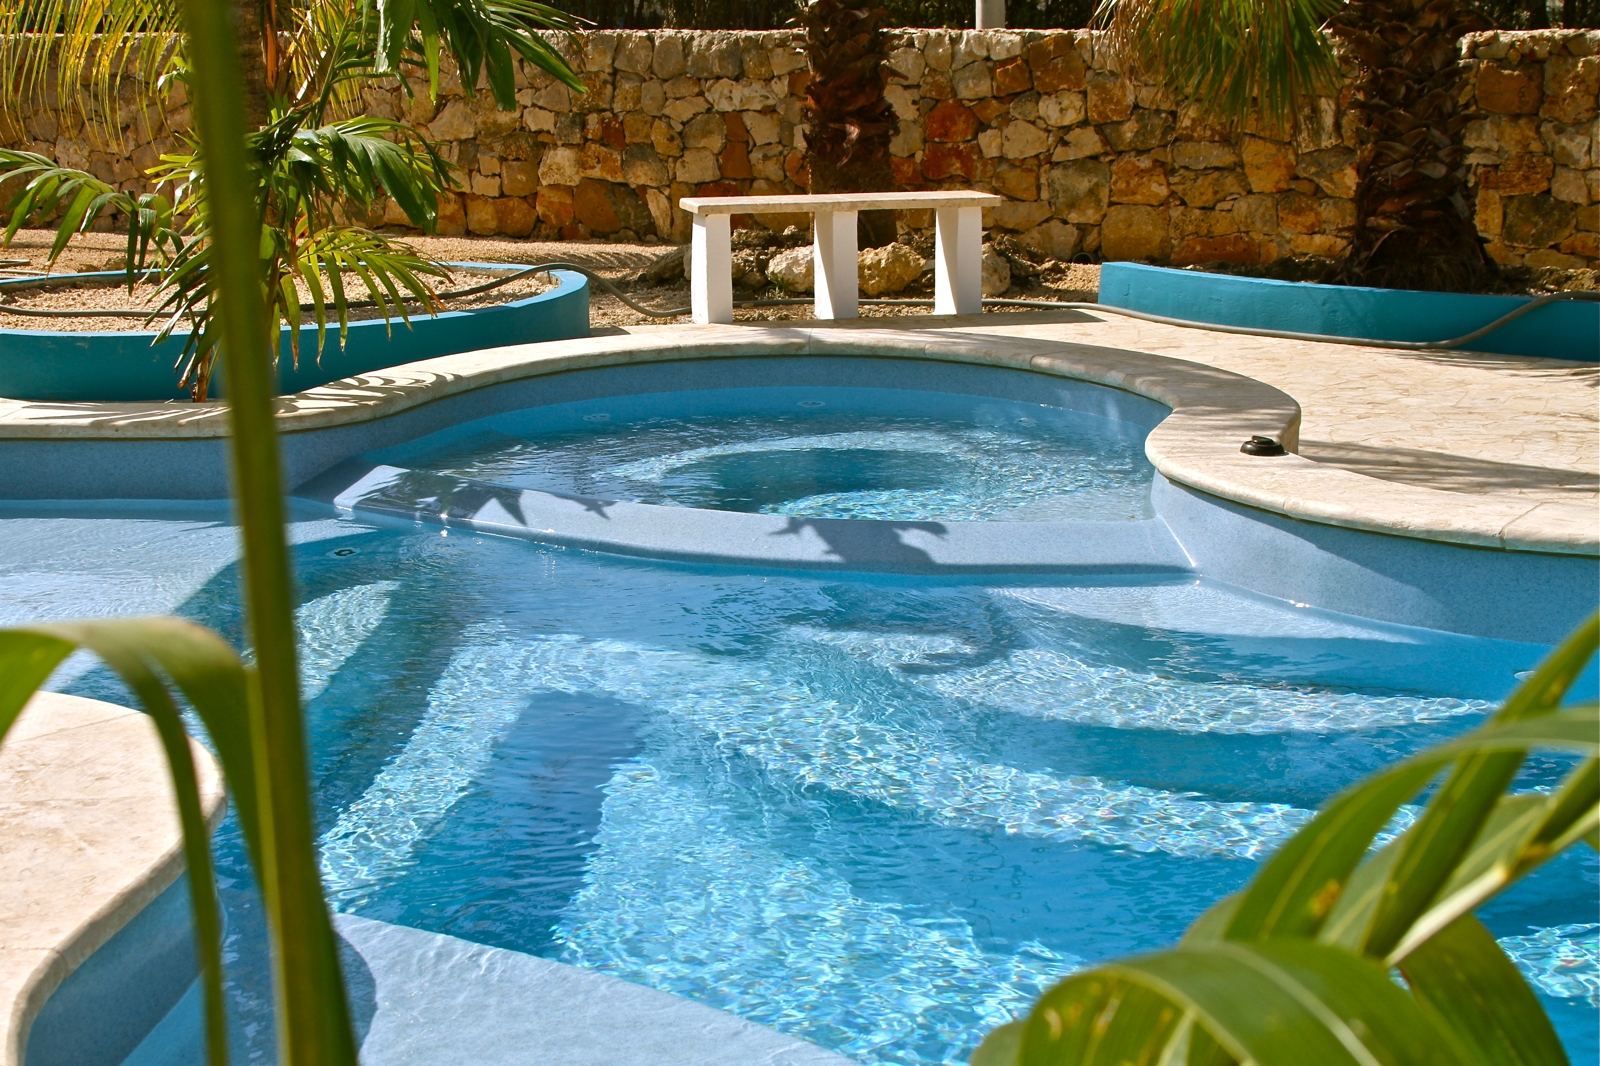 Prefab pools bing images for Prefabricated pools